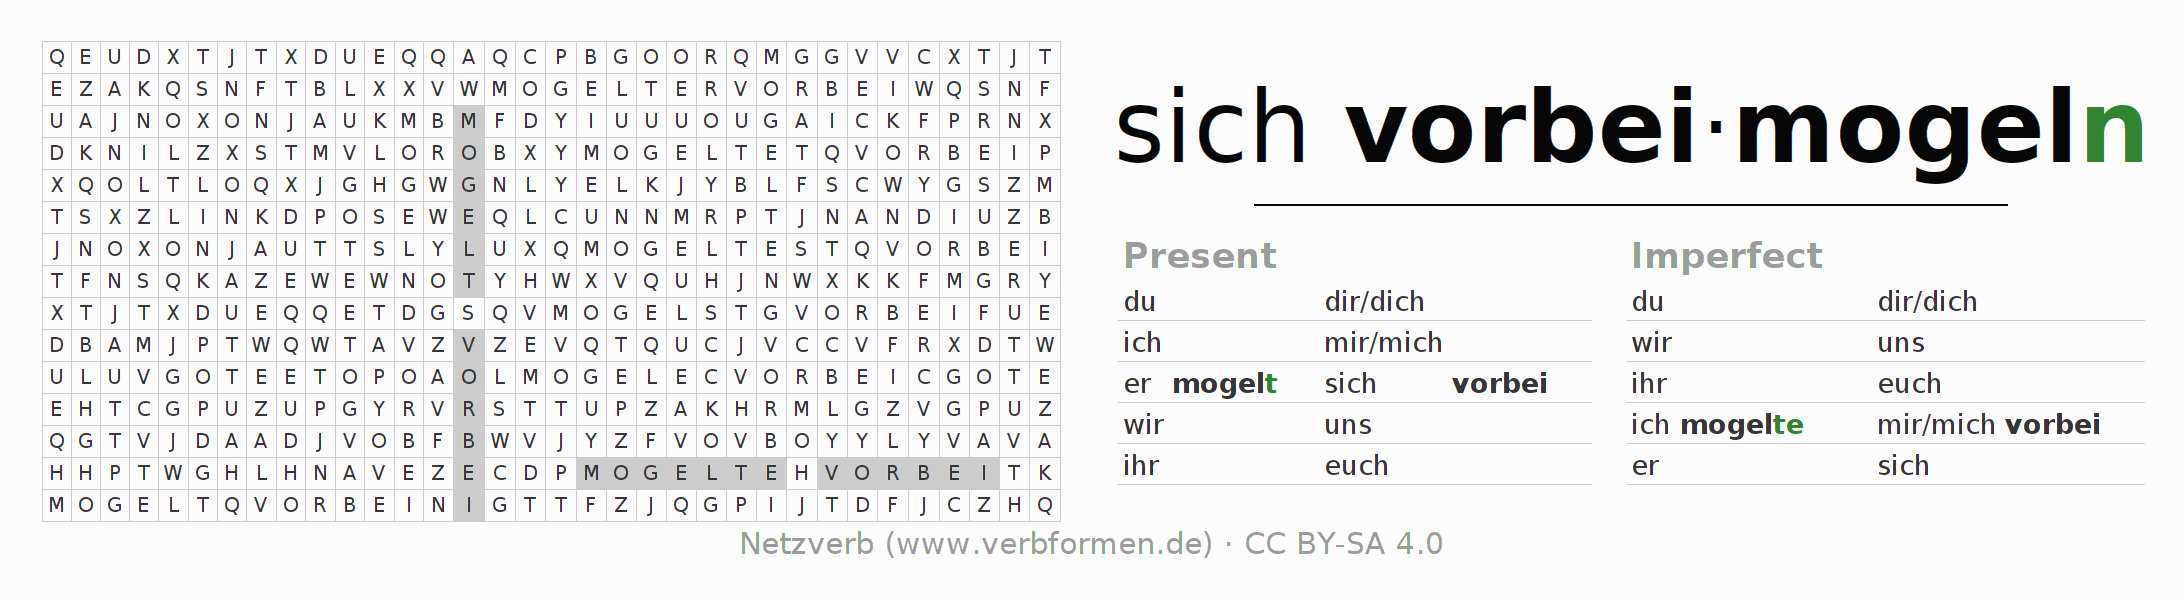 Word search puzzle for the conjugation of the verb sich vorbeimogeln